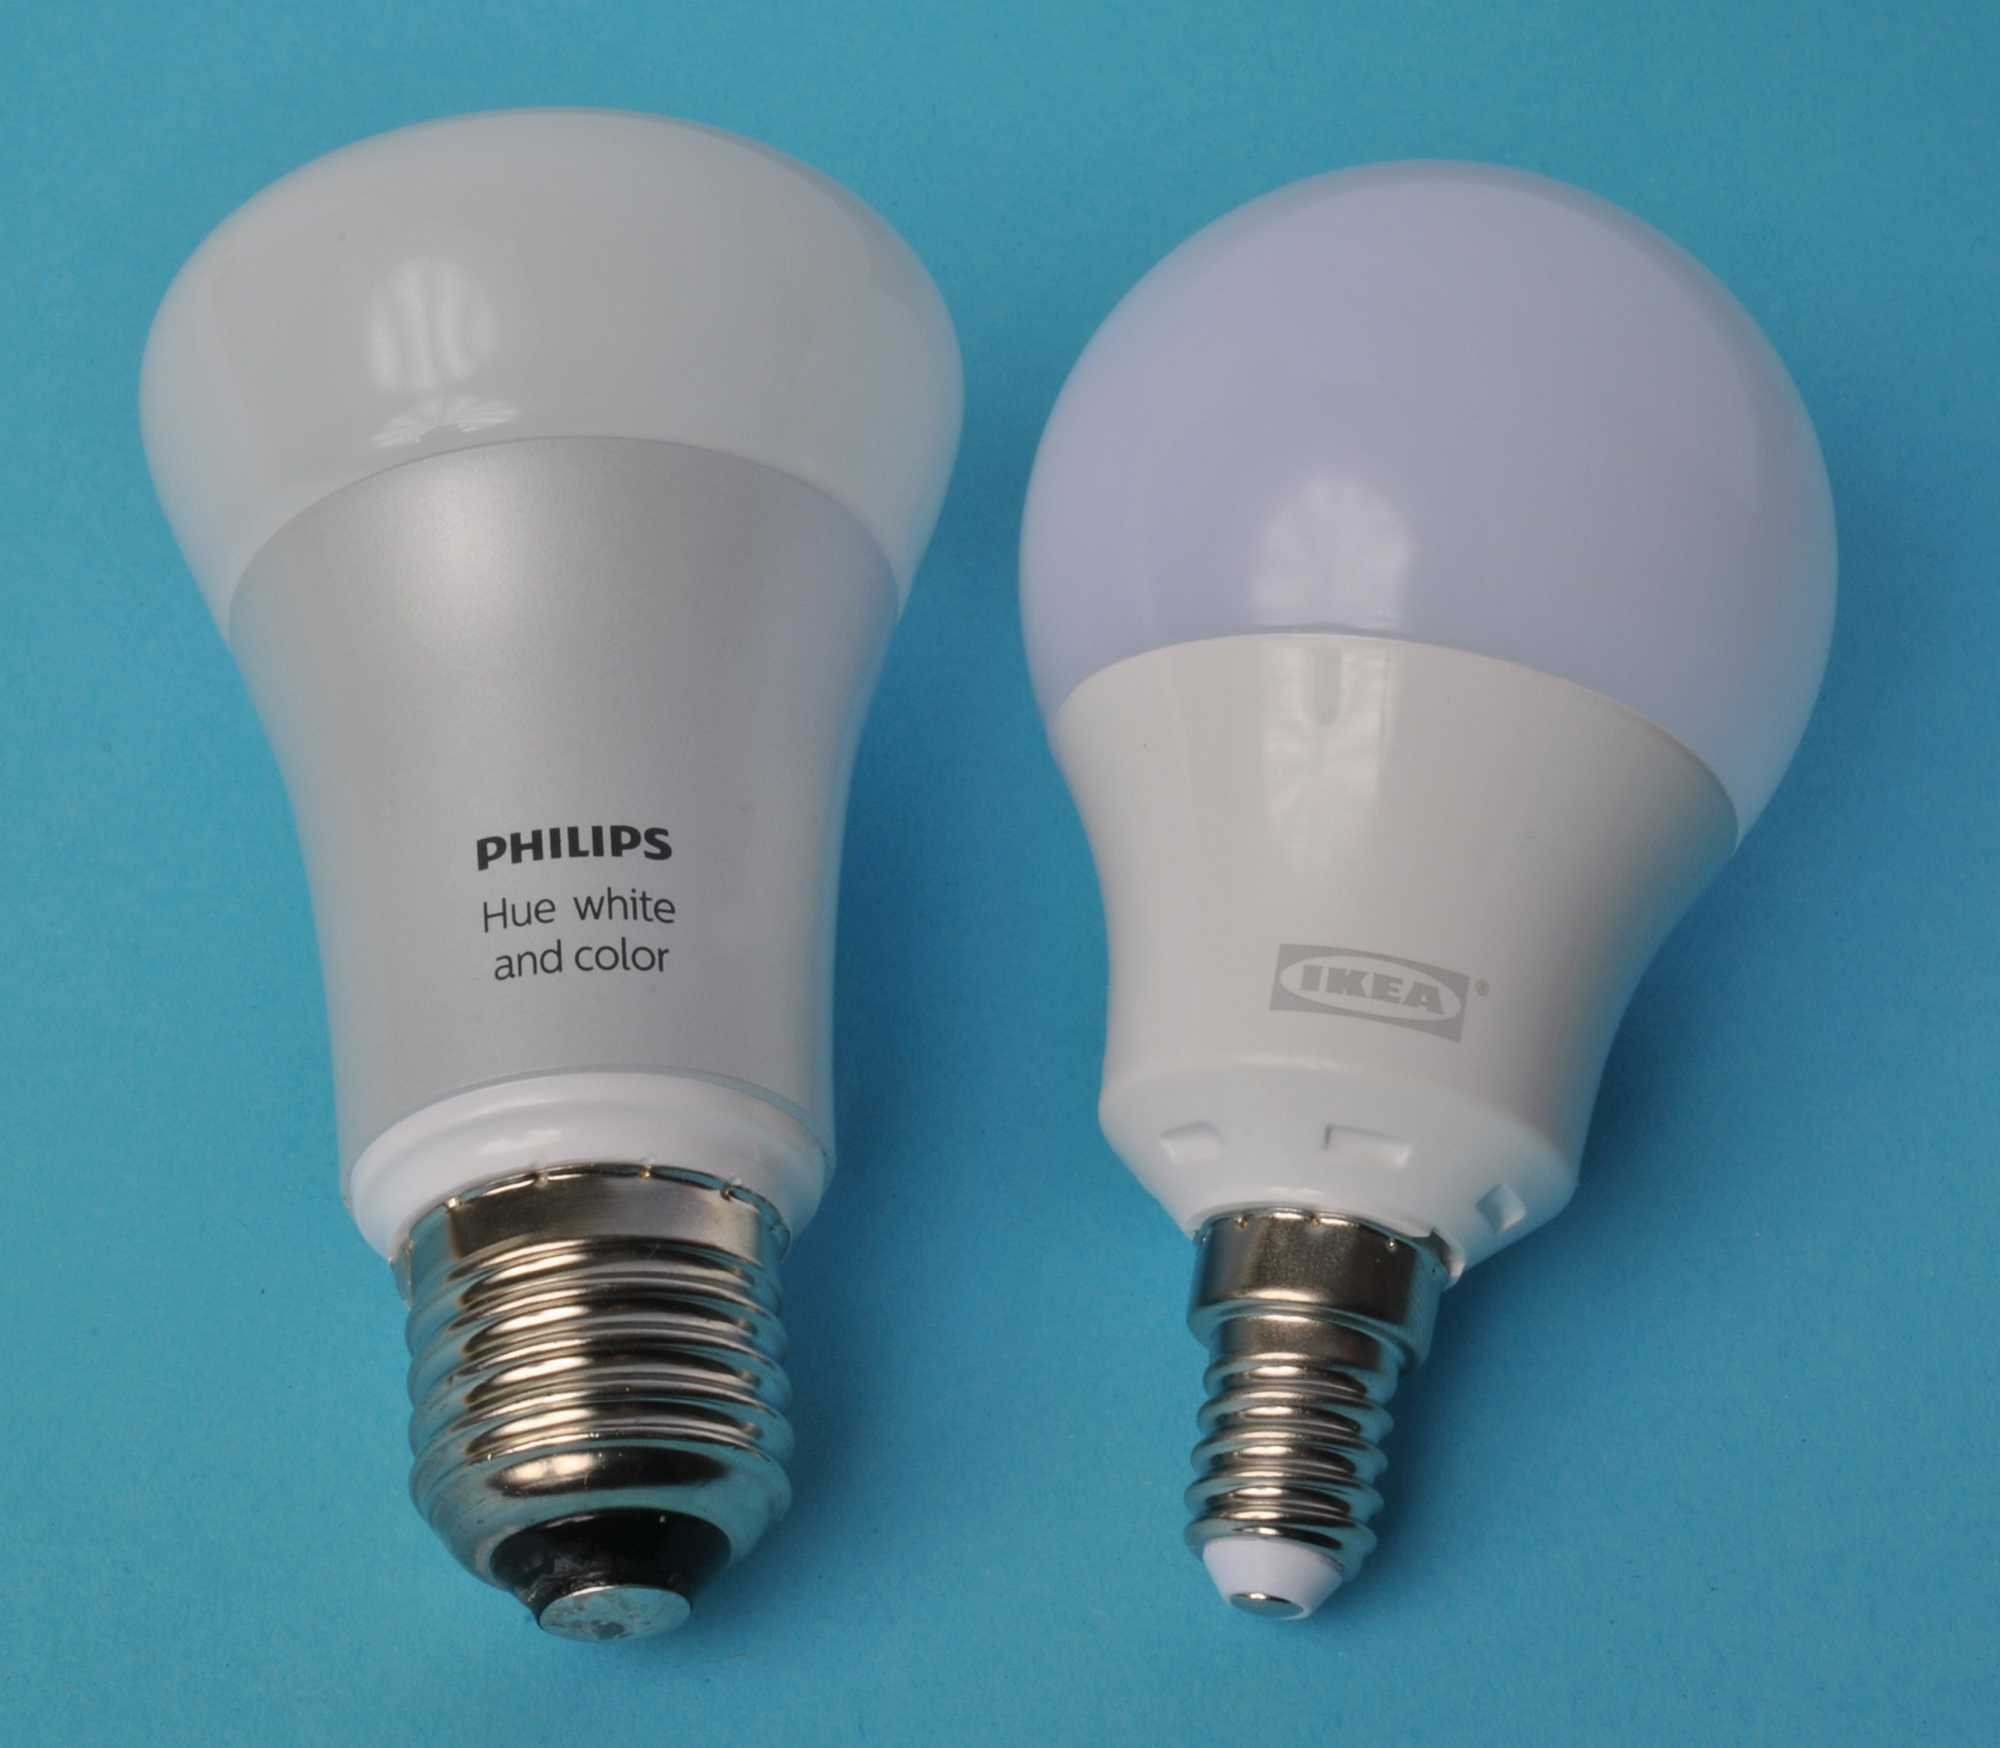 Links eine Philips Hue white and color, rechts eine Ikea Tradfri Lampe